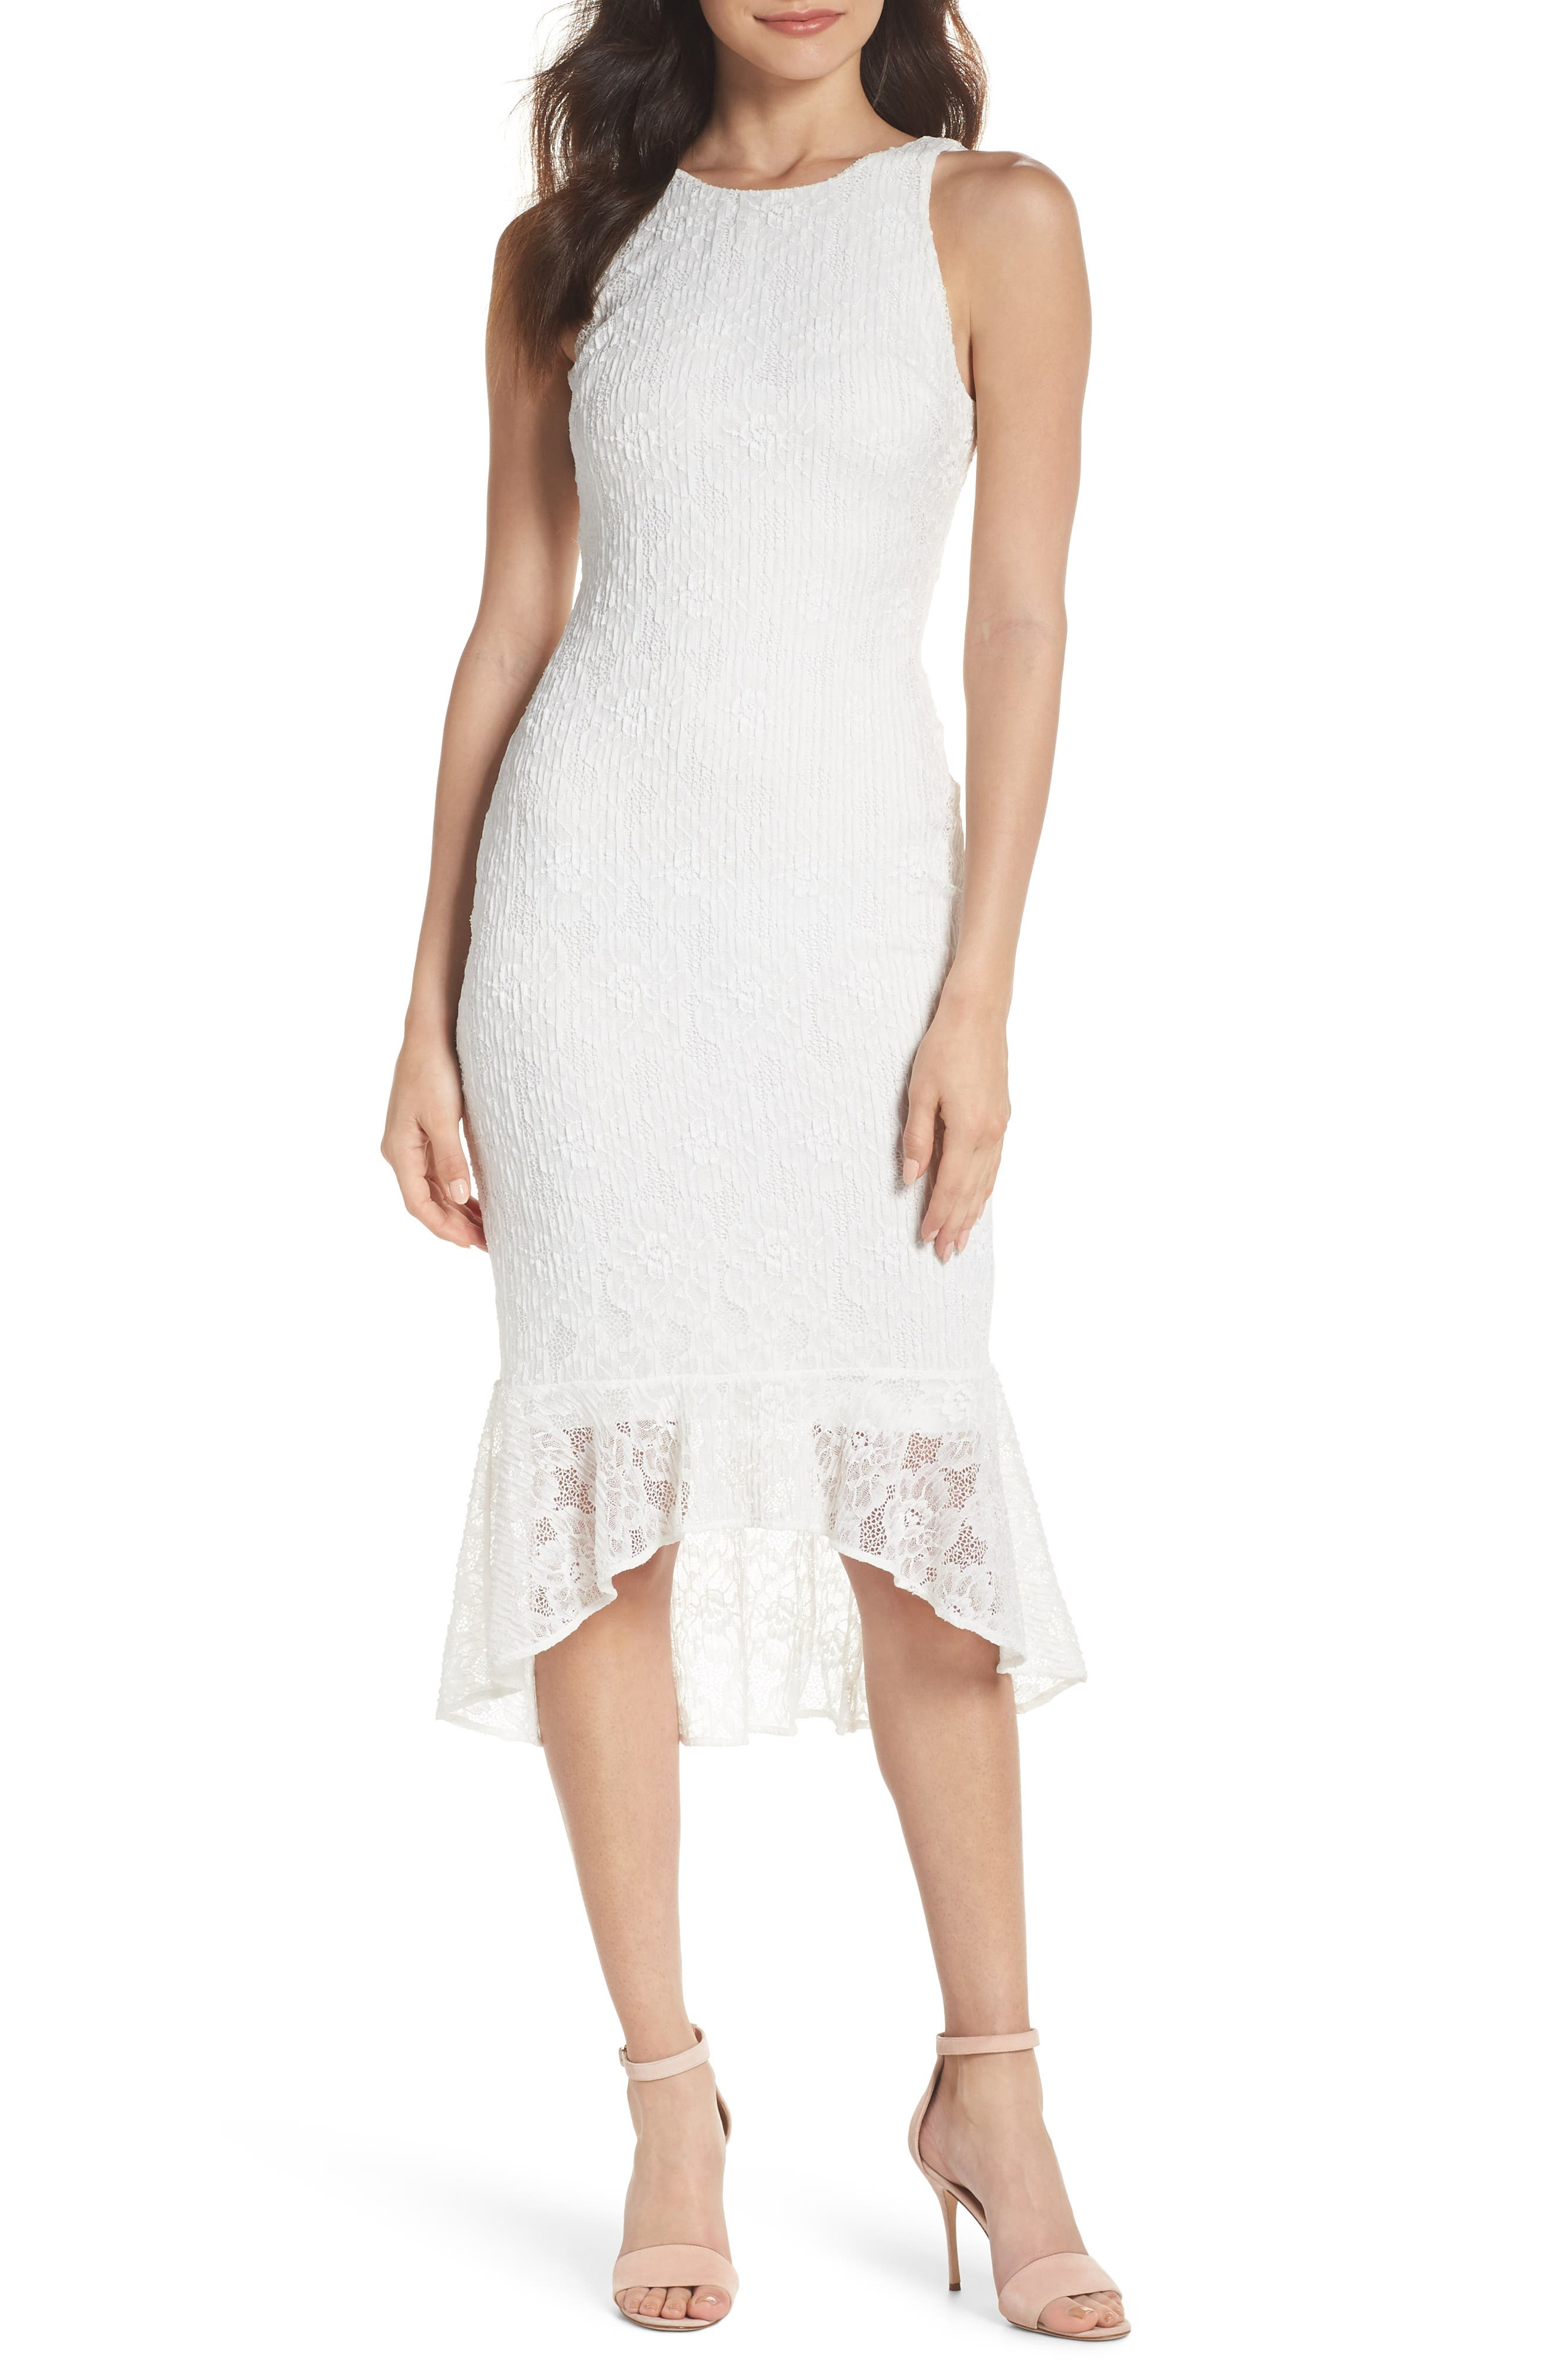 Ali & Jay Sparkling Rose Stretch Lace Midi Dress